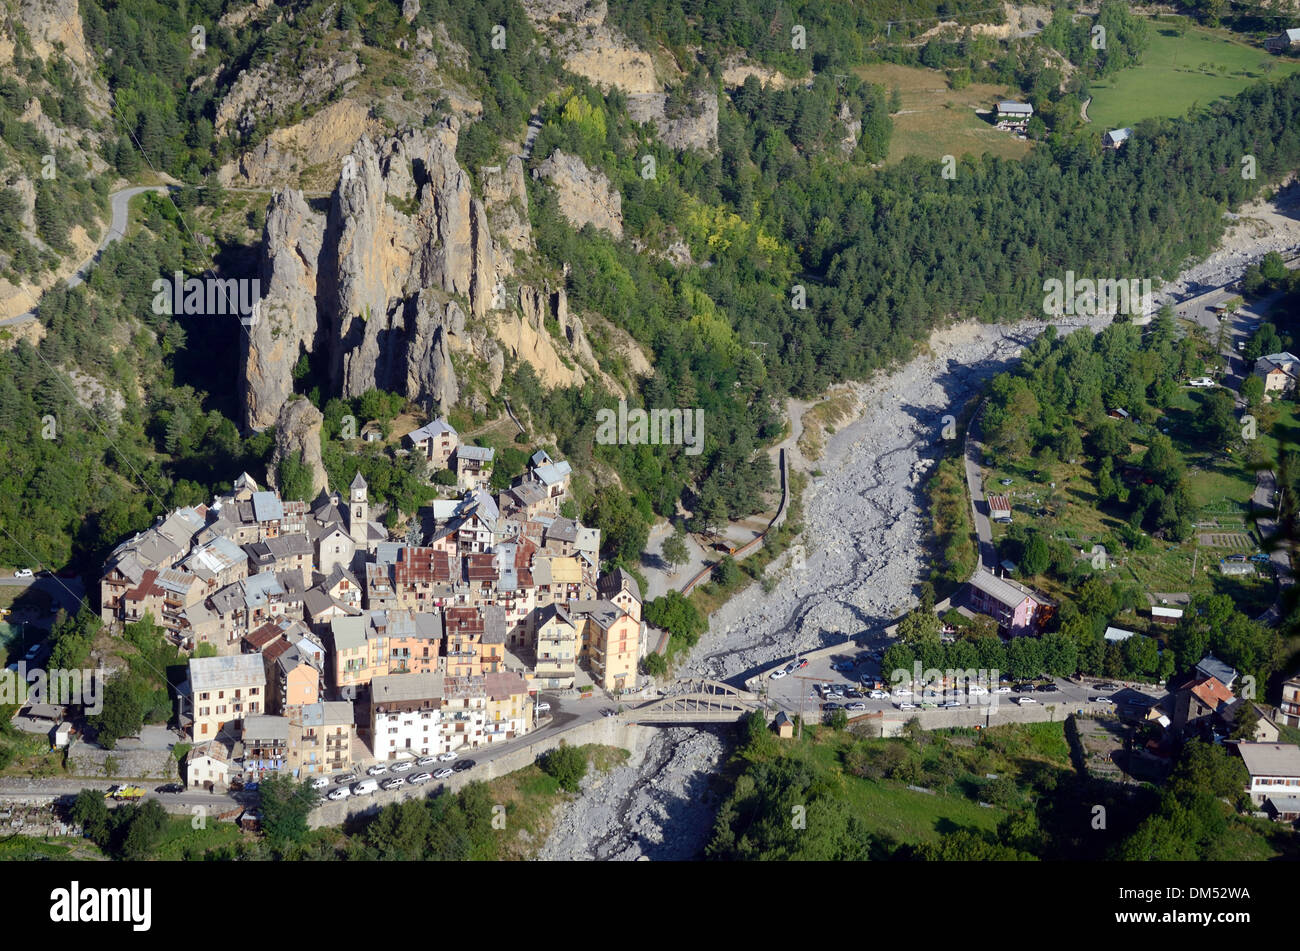 Aerial View of Péone or Peone Alpine Village and the Var Valley & River Bed Haut-Var Alpes-Maritimes France Stock Photo